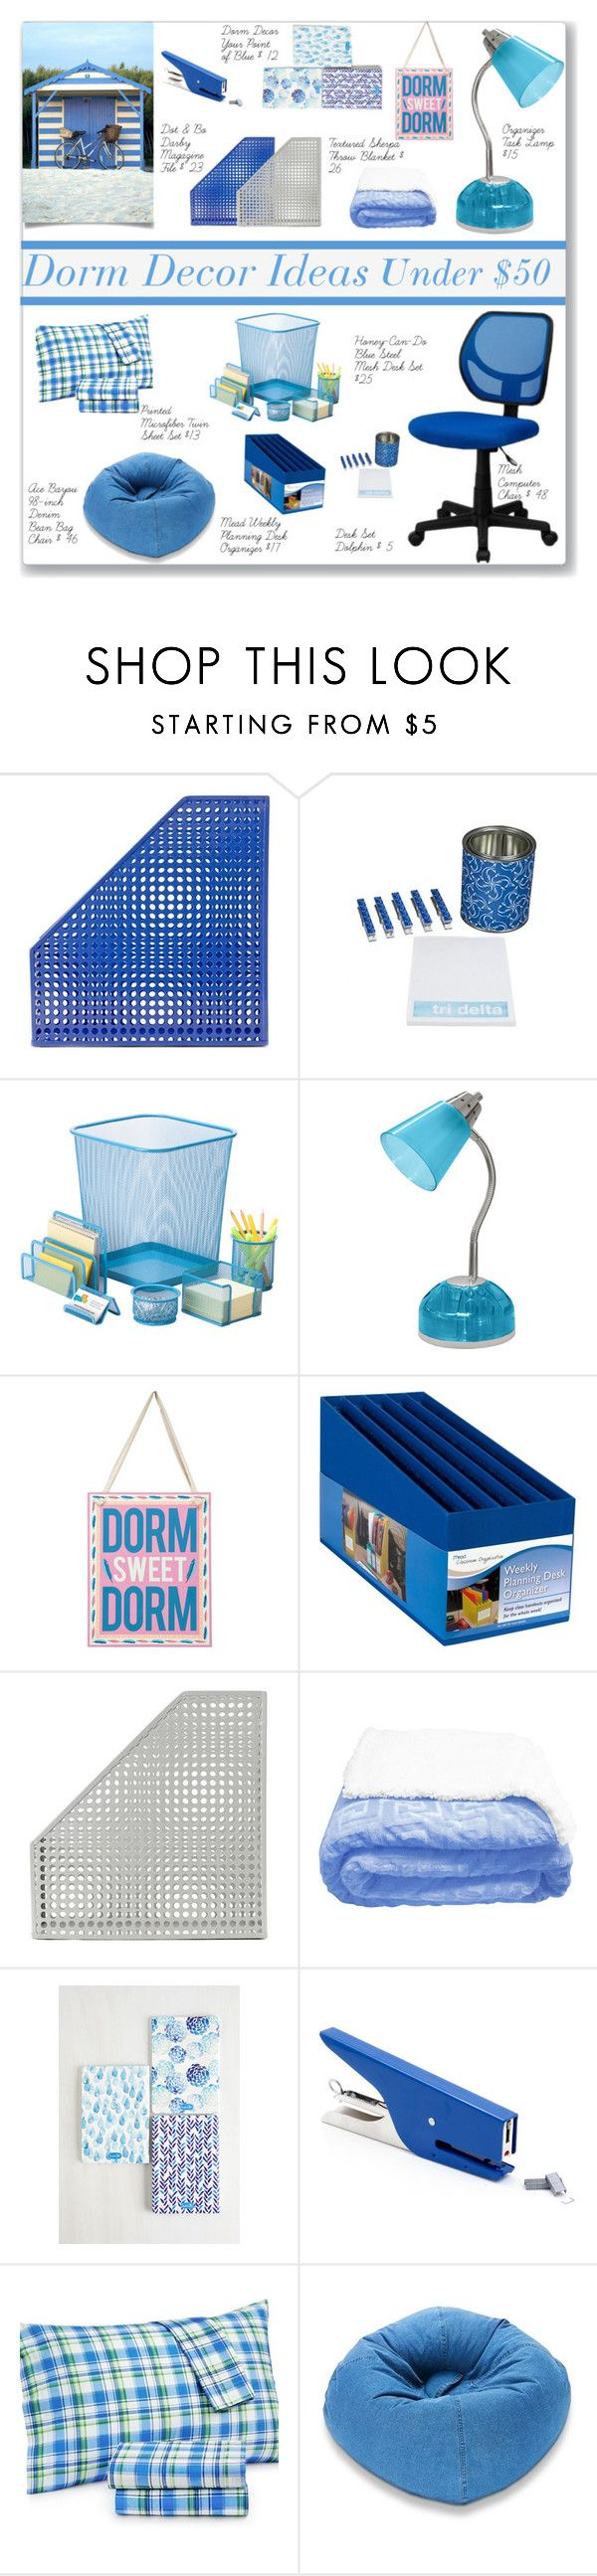 """""""Dorm Decor Ideas Under $ 50"""" by namastebharat ❤ liked on Polyvore featuring interior, interiors, interior design, home, home decor, interior decorating, Dot & Bo, Honey-Can-Do, jcp and Primitives By Kathy"""